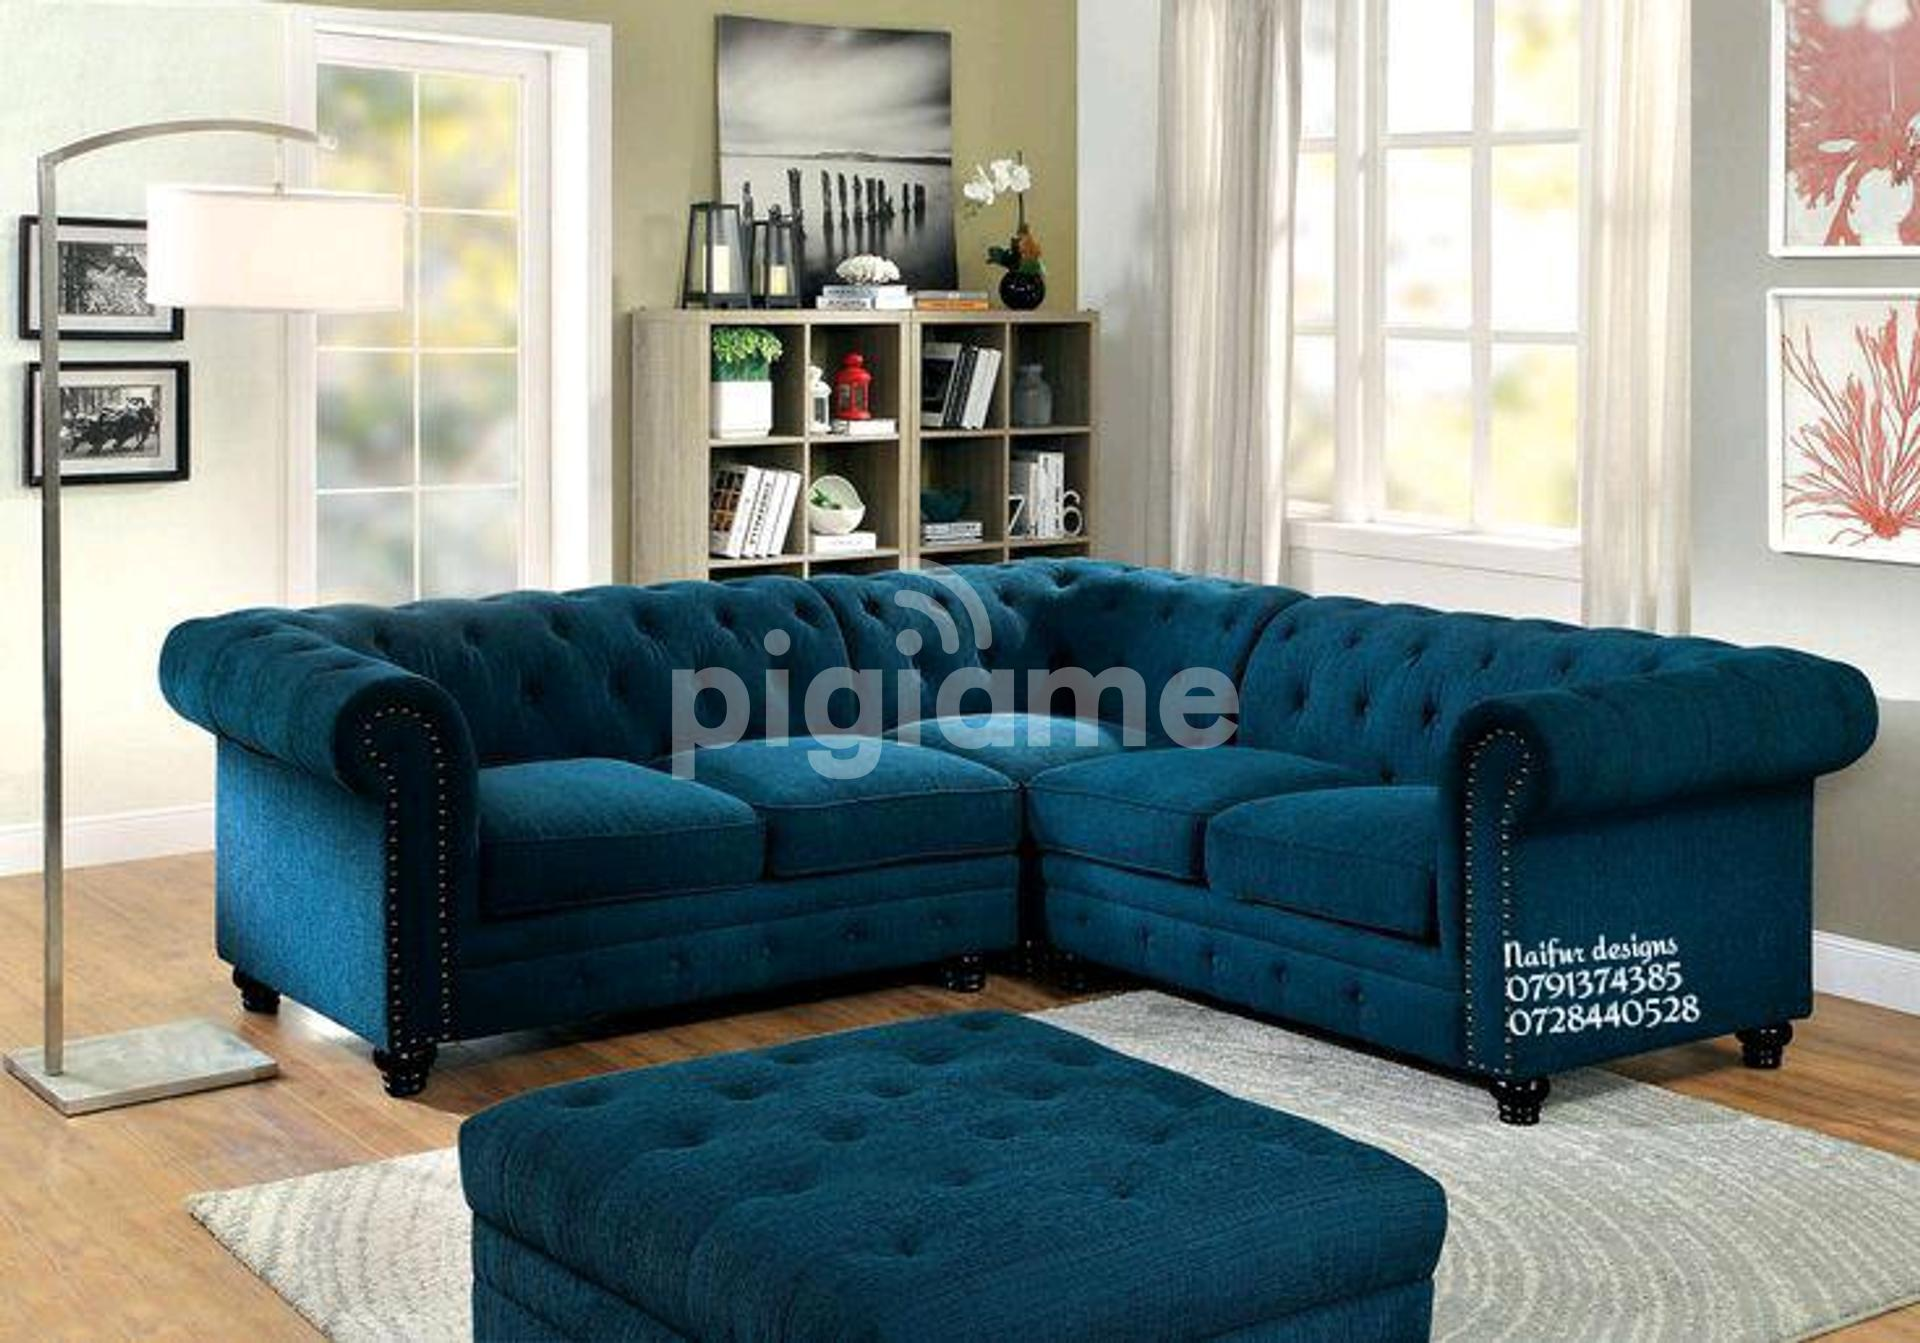 Chesterfield Sofas L Shaped Sofas Sectional Couch Five Seater Sofas In Nairobi Pigiame